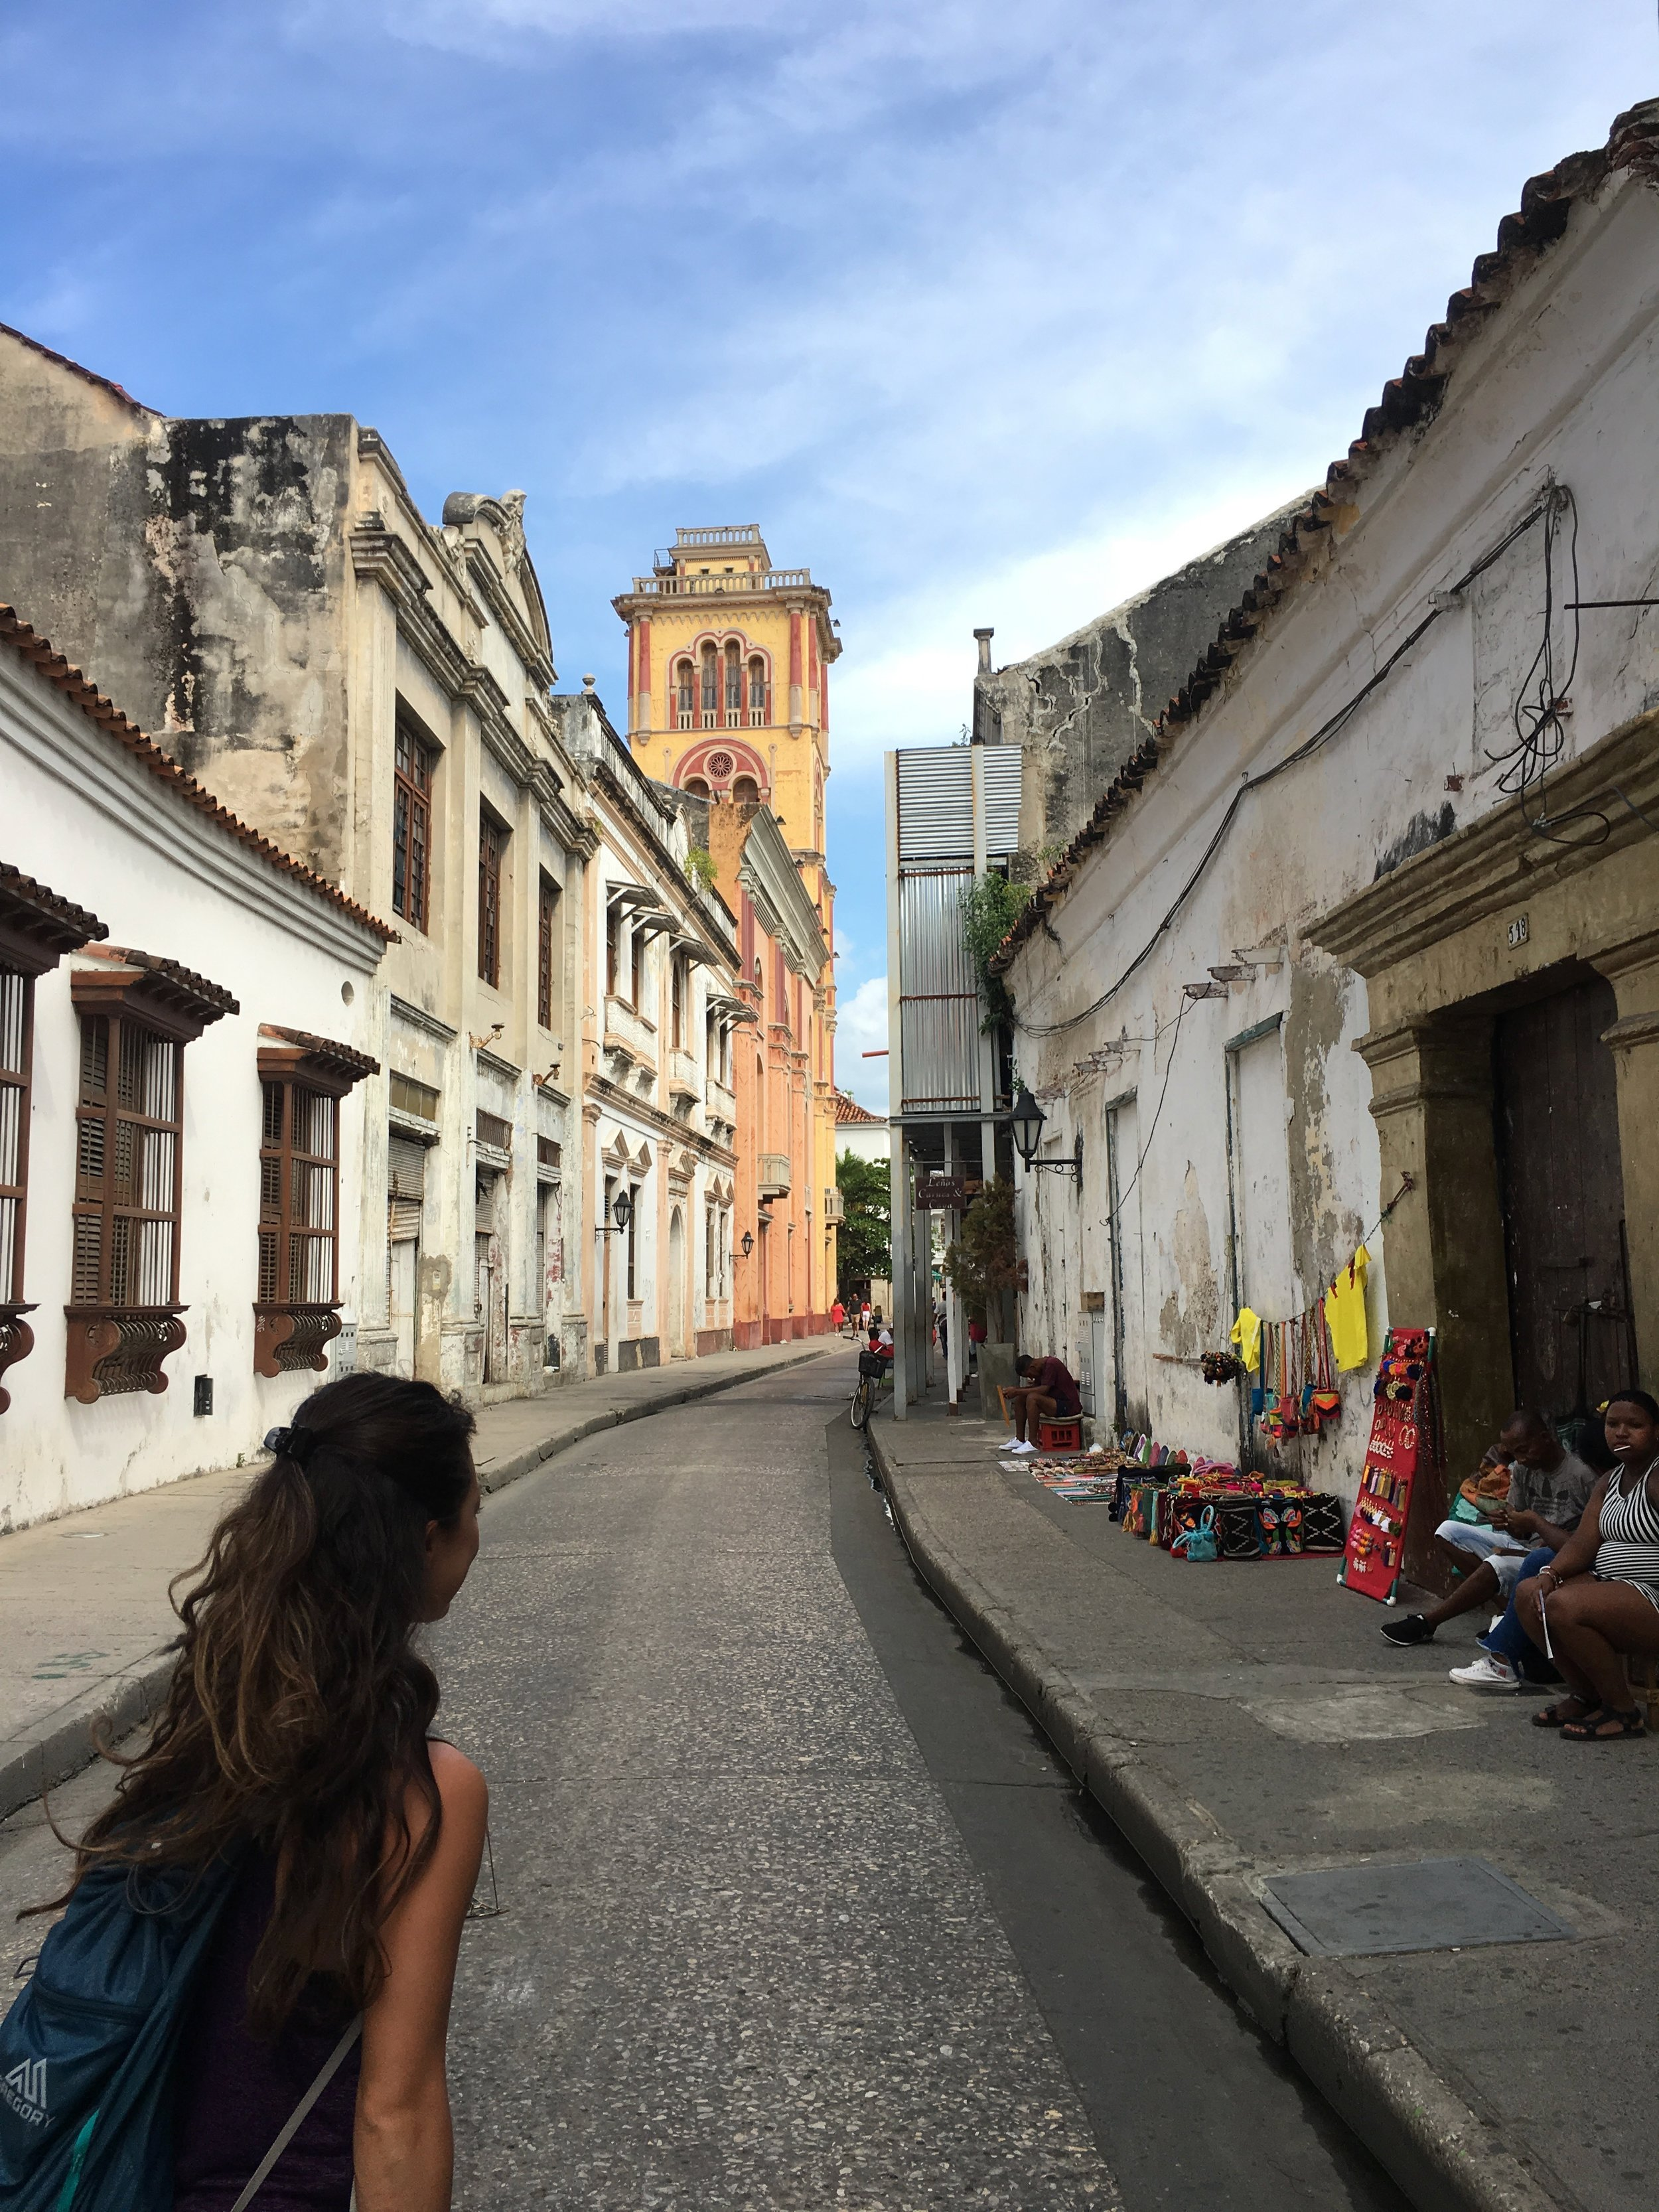 Walking through the Walled City